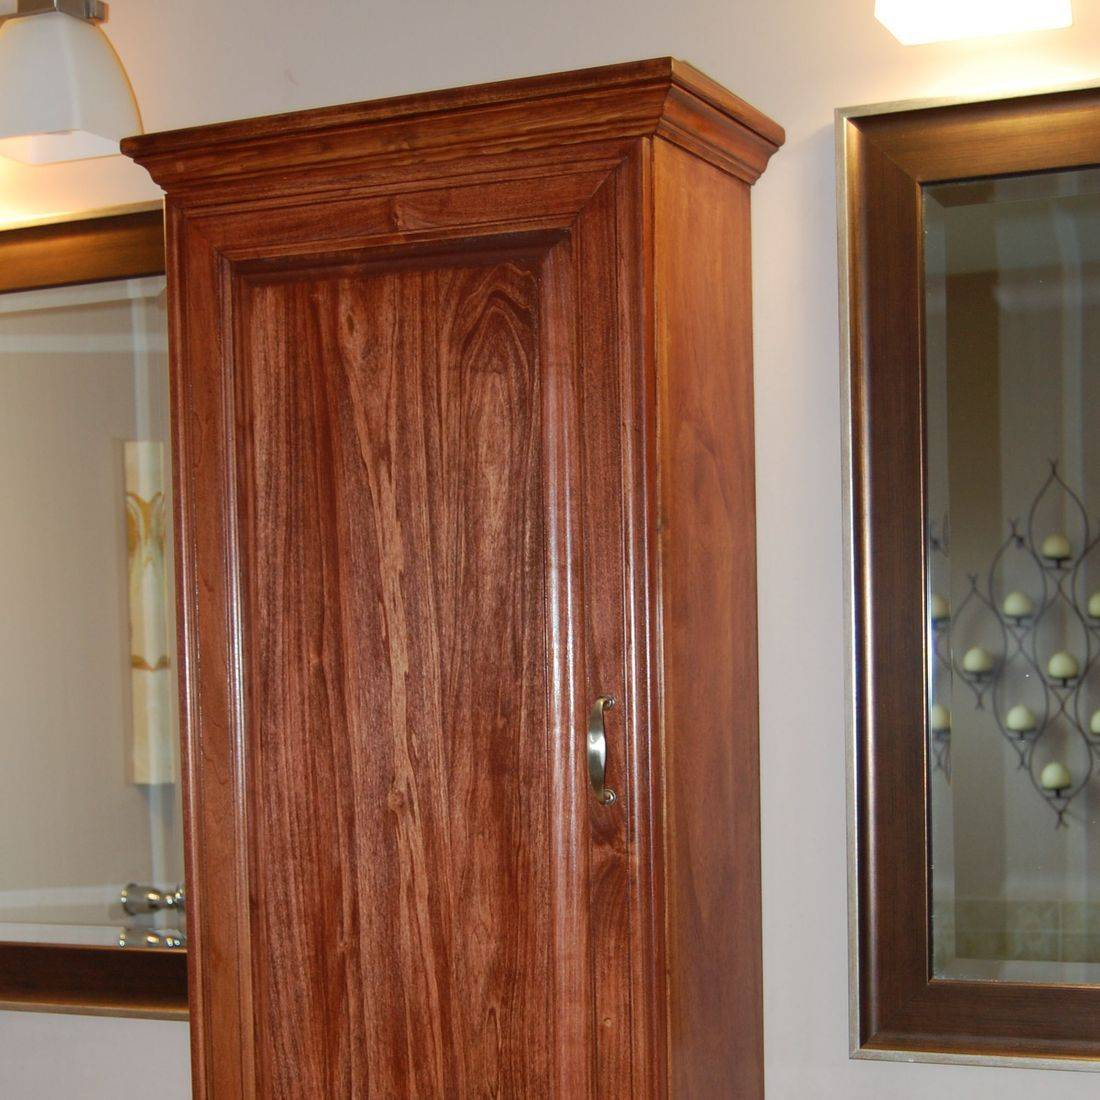 Shiny brown cabinet